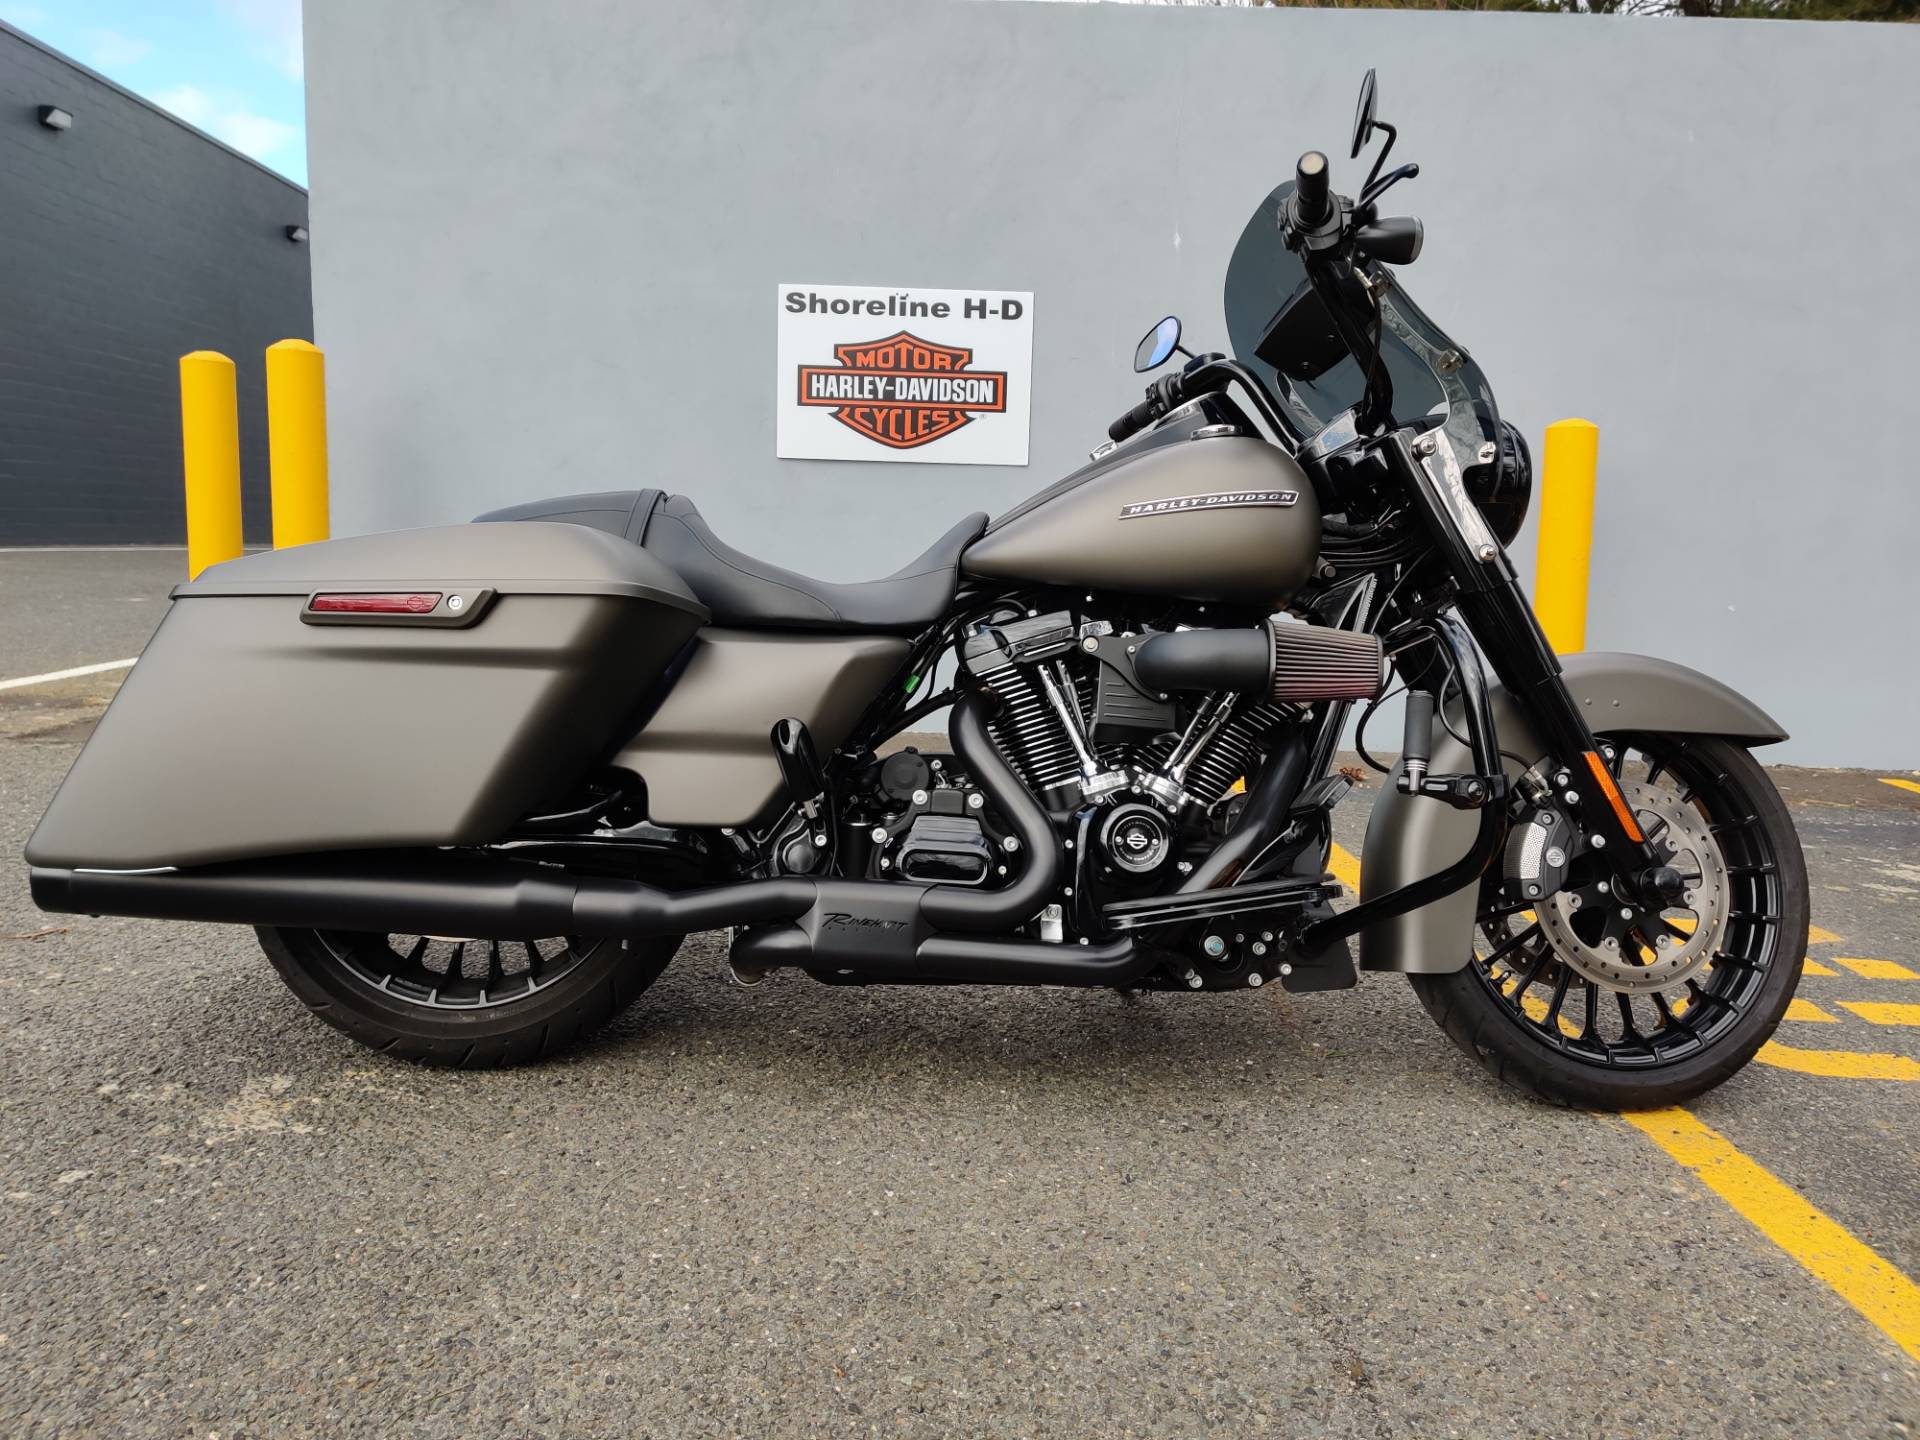 2018 Harley-Davidson Road King Special in West Long Branch, New Jersey - Photo 1